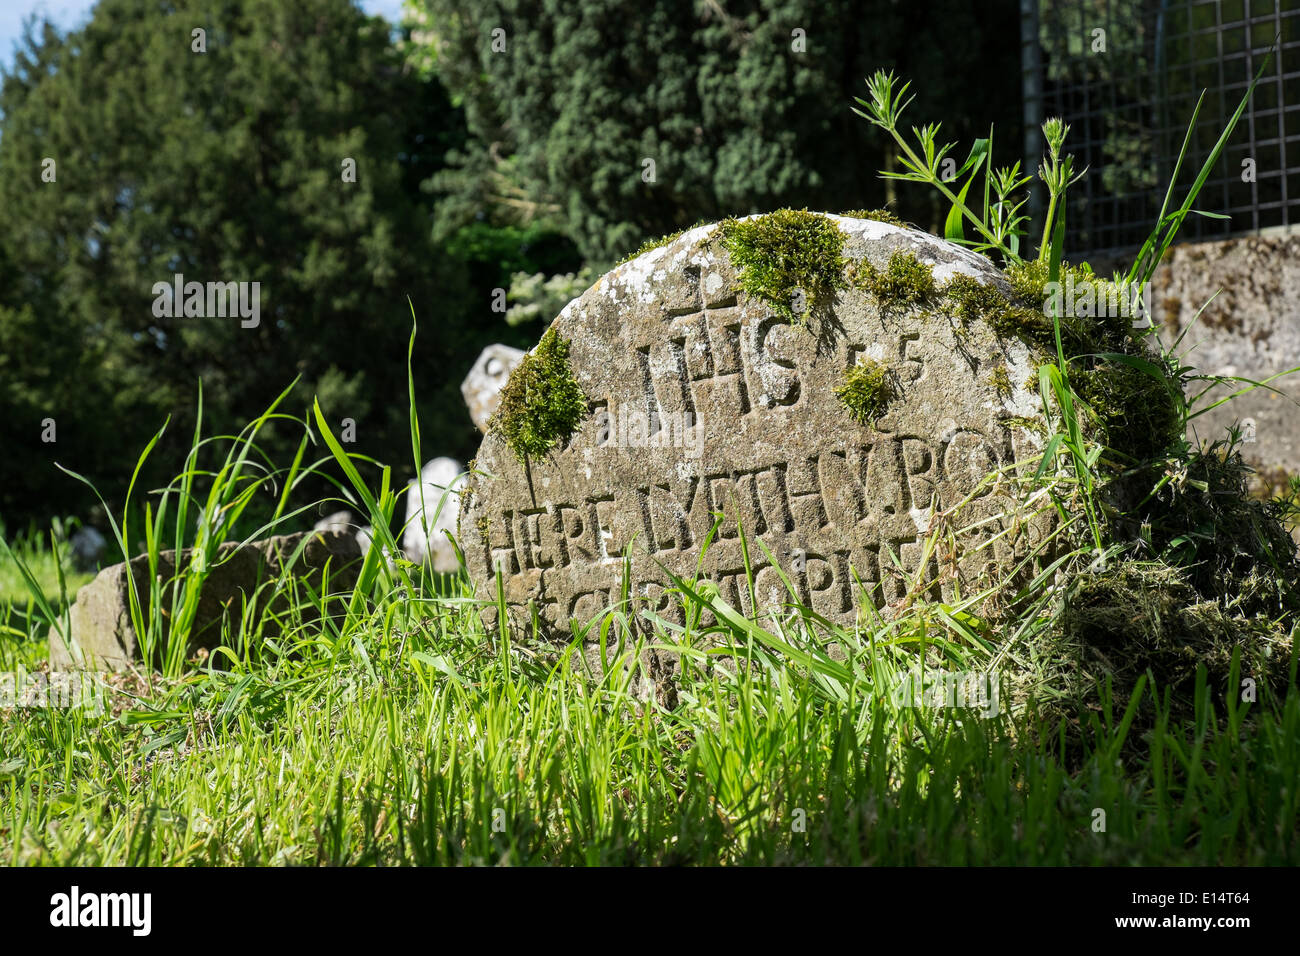 A grave stone marker in an old Irish country churchyard from 1775 - Here lyeth ye body of....... - Stock Image